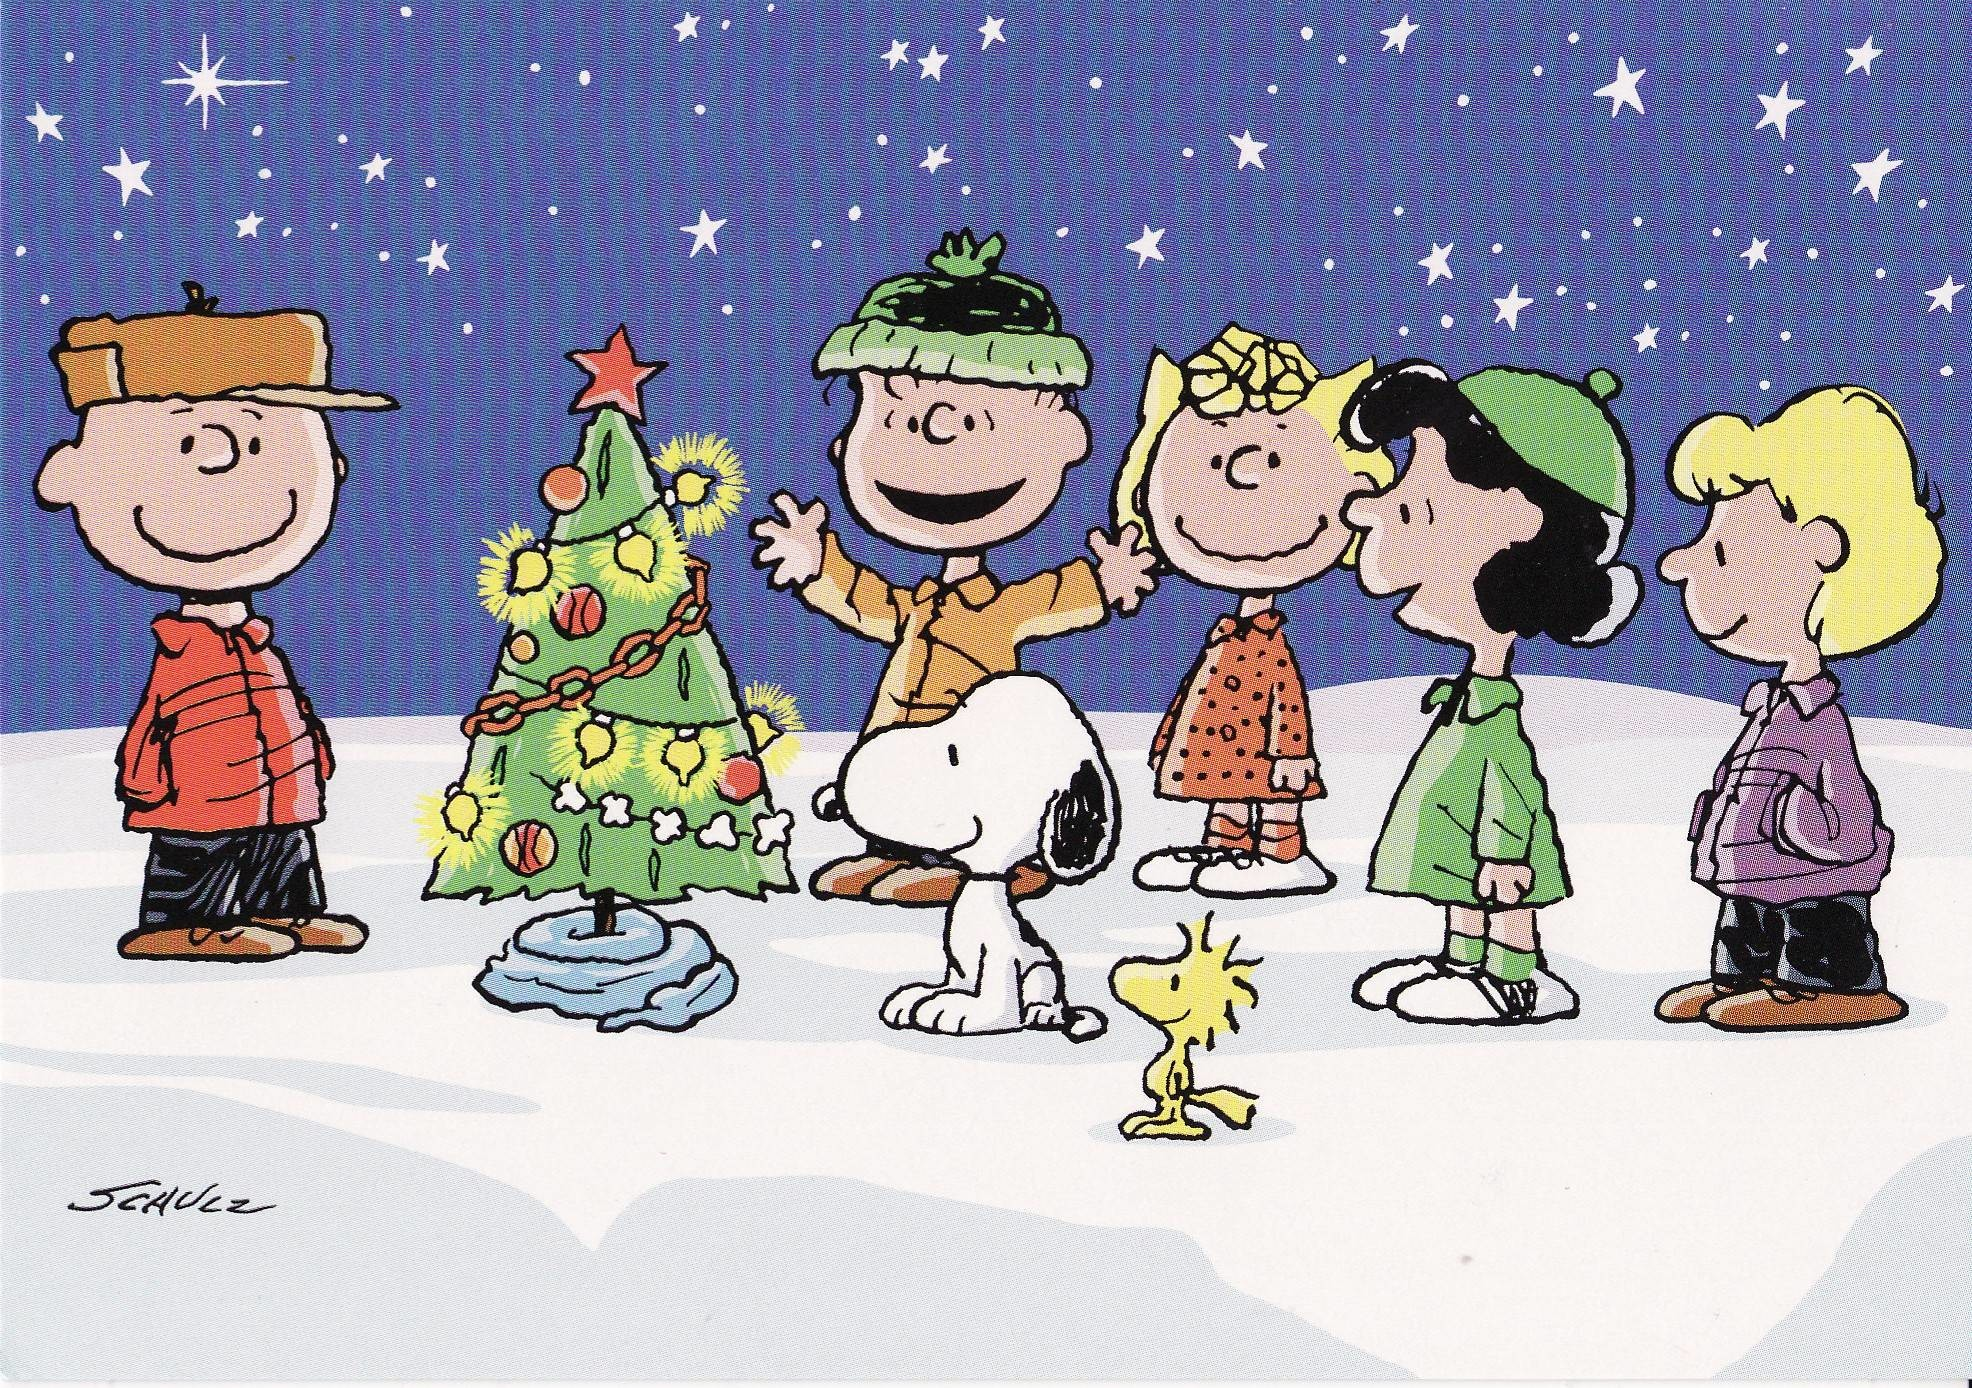 peanuts christmas wallpaper - Peanuts Christmas